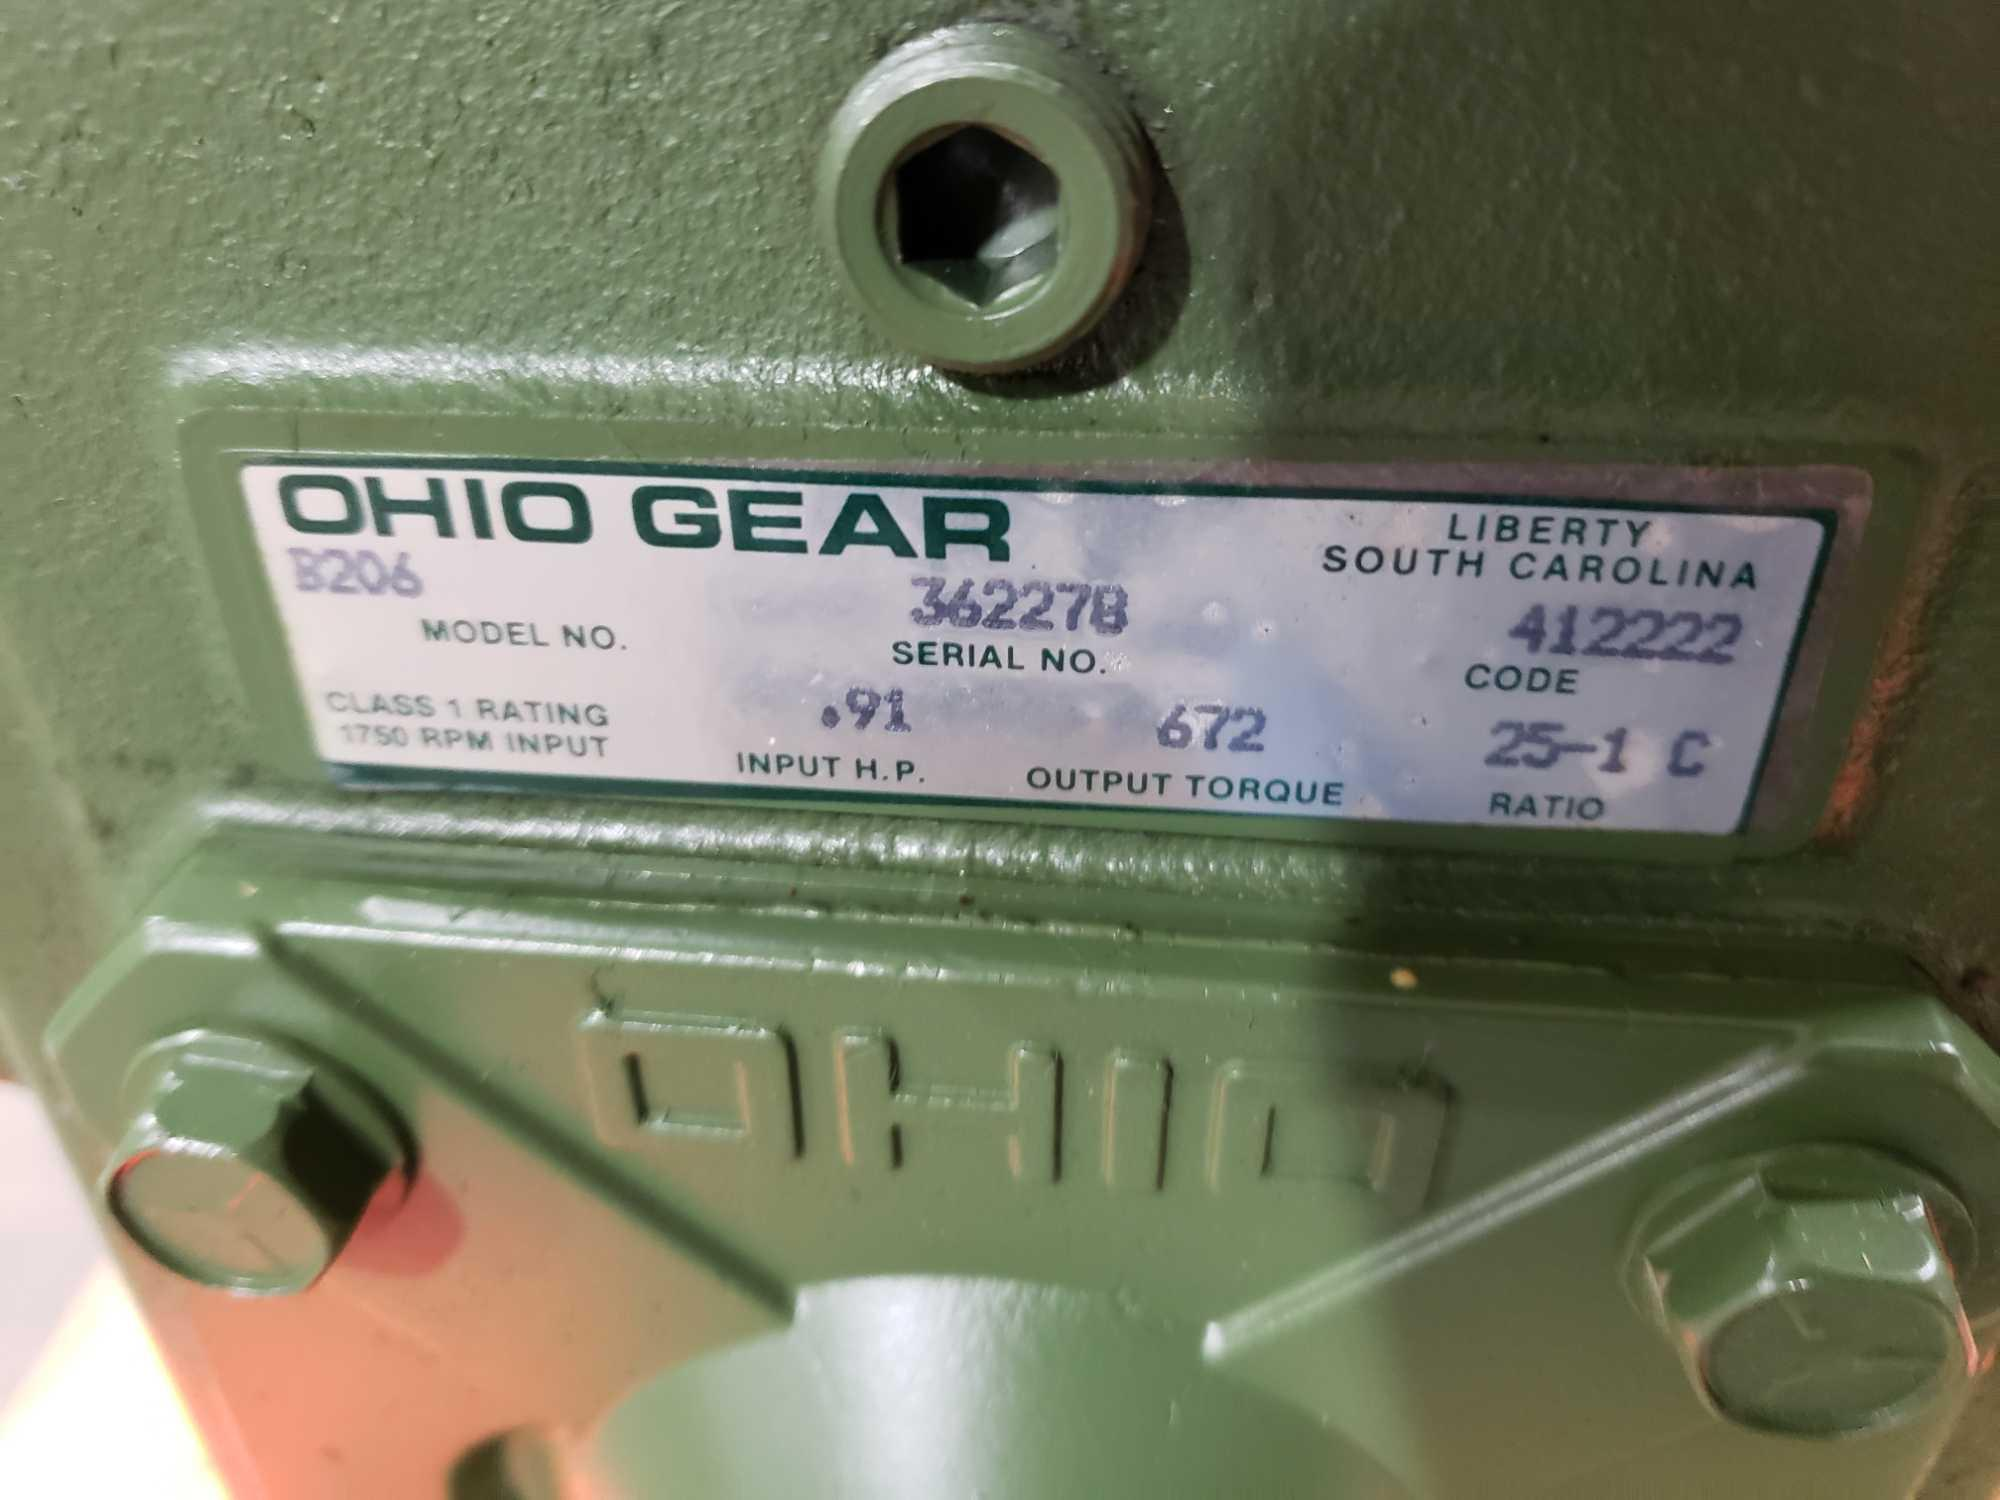 Lot 22 - Ohio Gear model B206 gear box. 25:1 ratio. New in box.